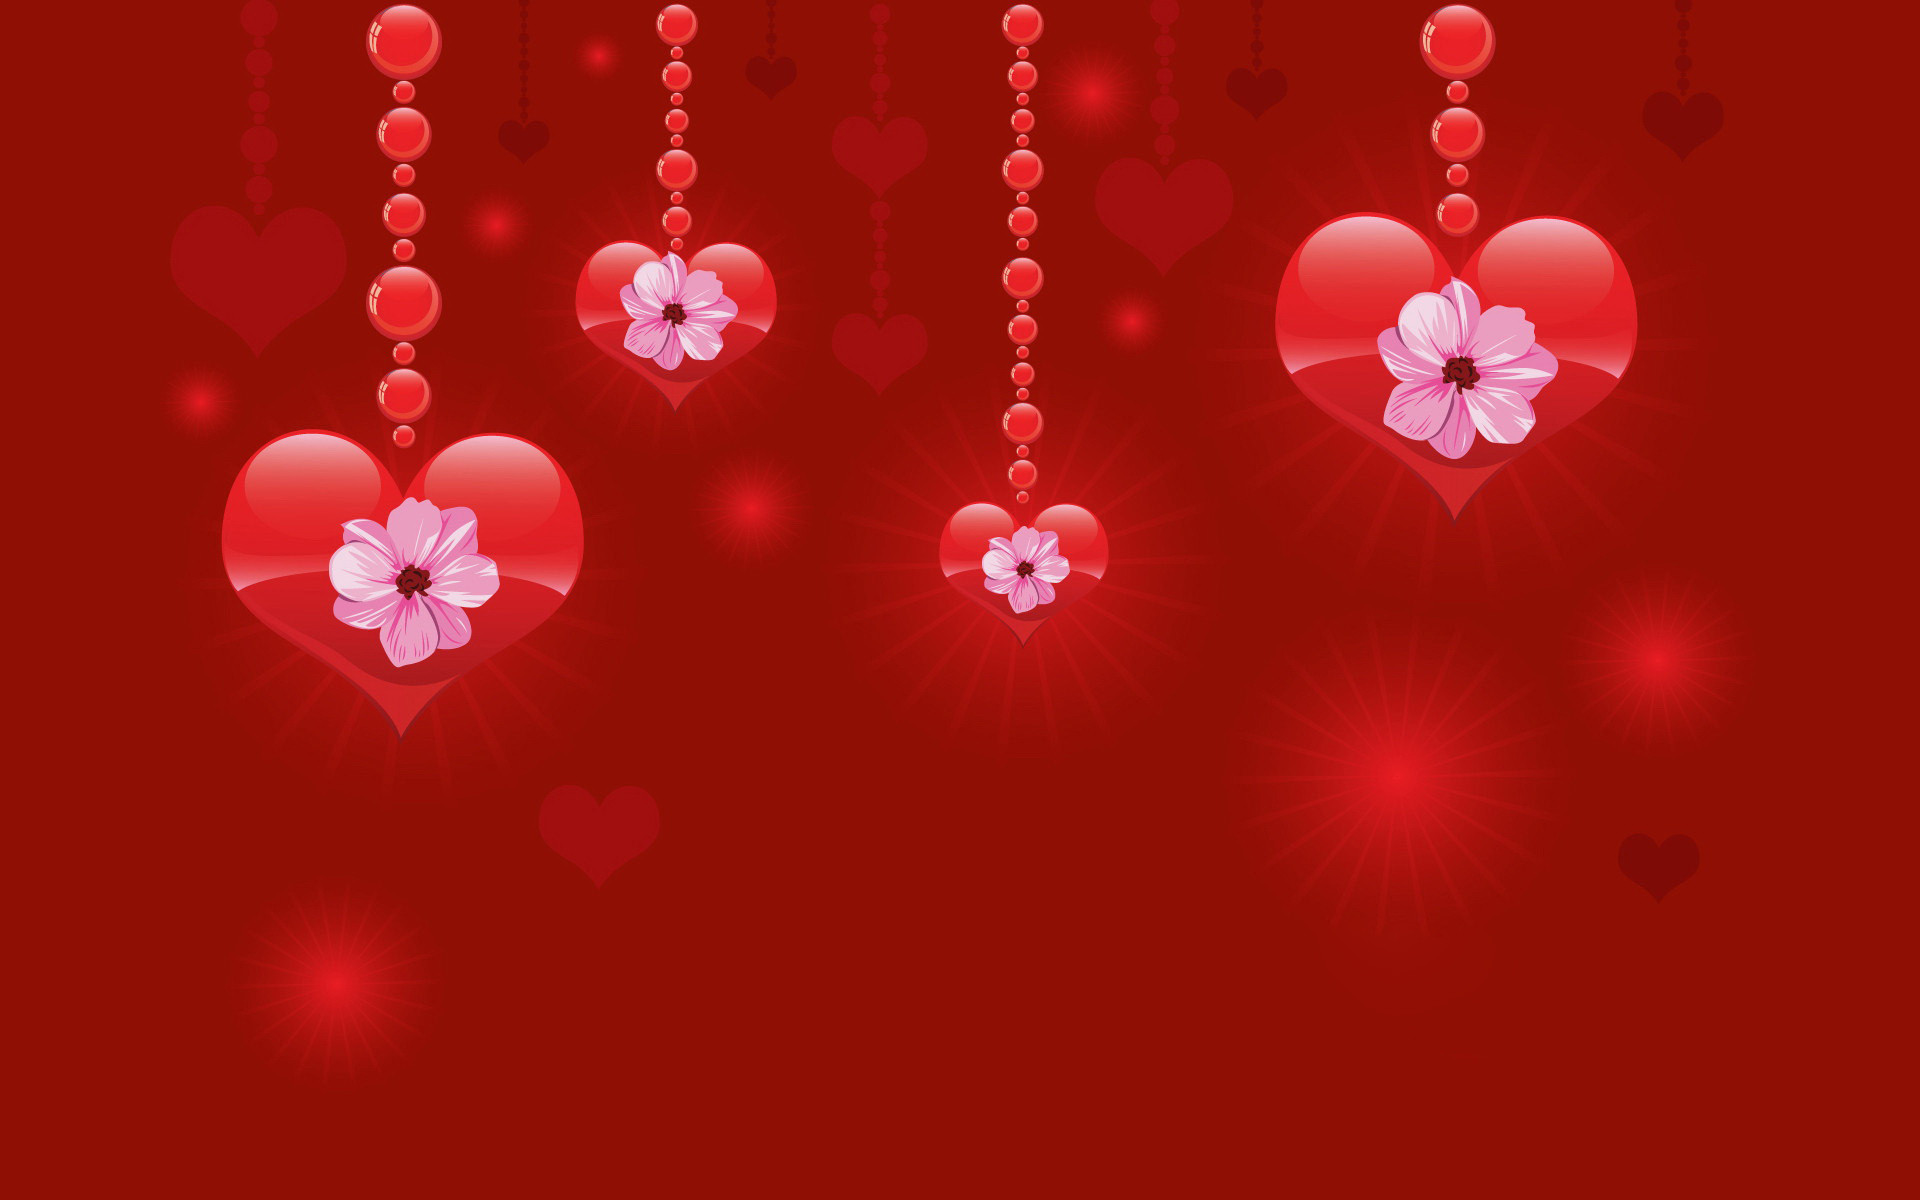 Holidays_Saint_Valentines_Day_Heart_at_Valentines_Day_020455_.jpg